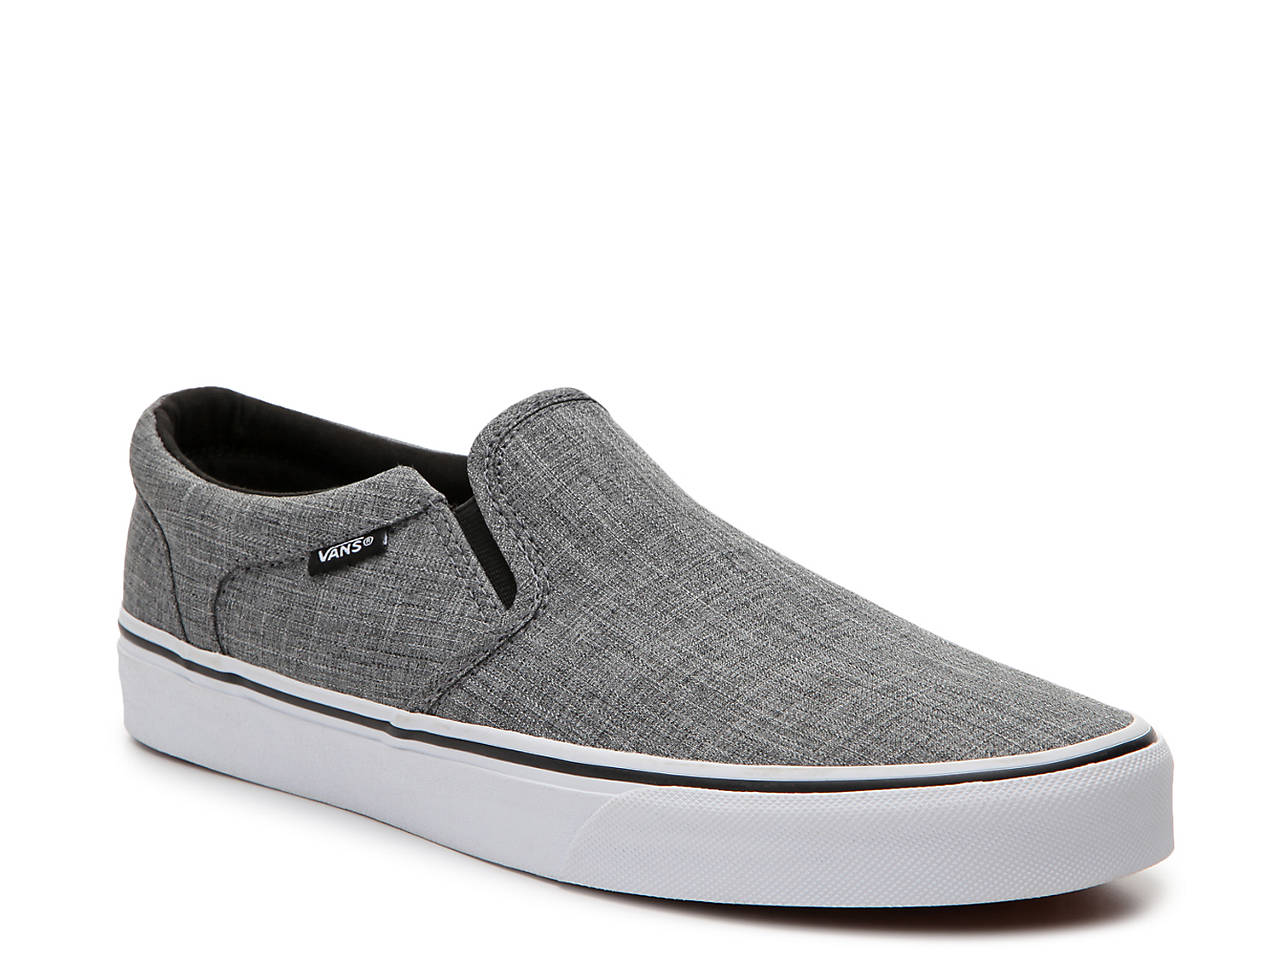 5e39f827b5 Vans Asher Slip-On Sneaker - Men s Men s Shoes